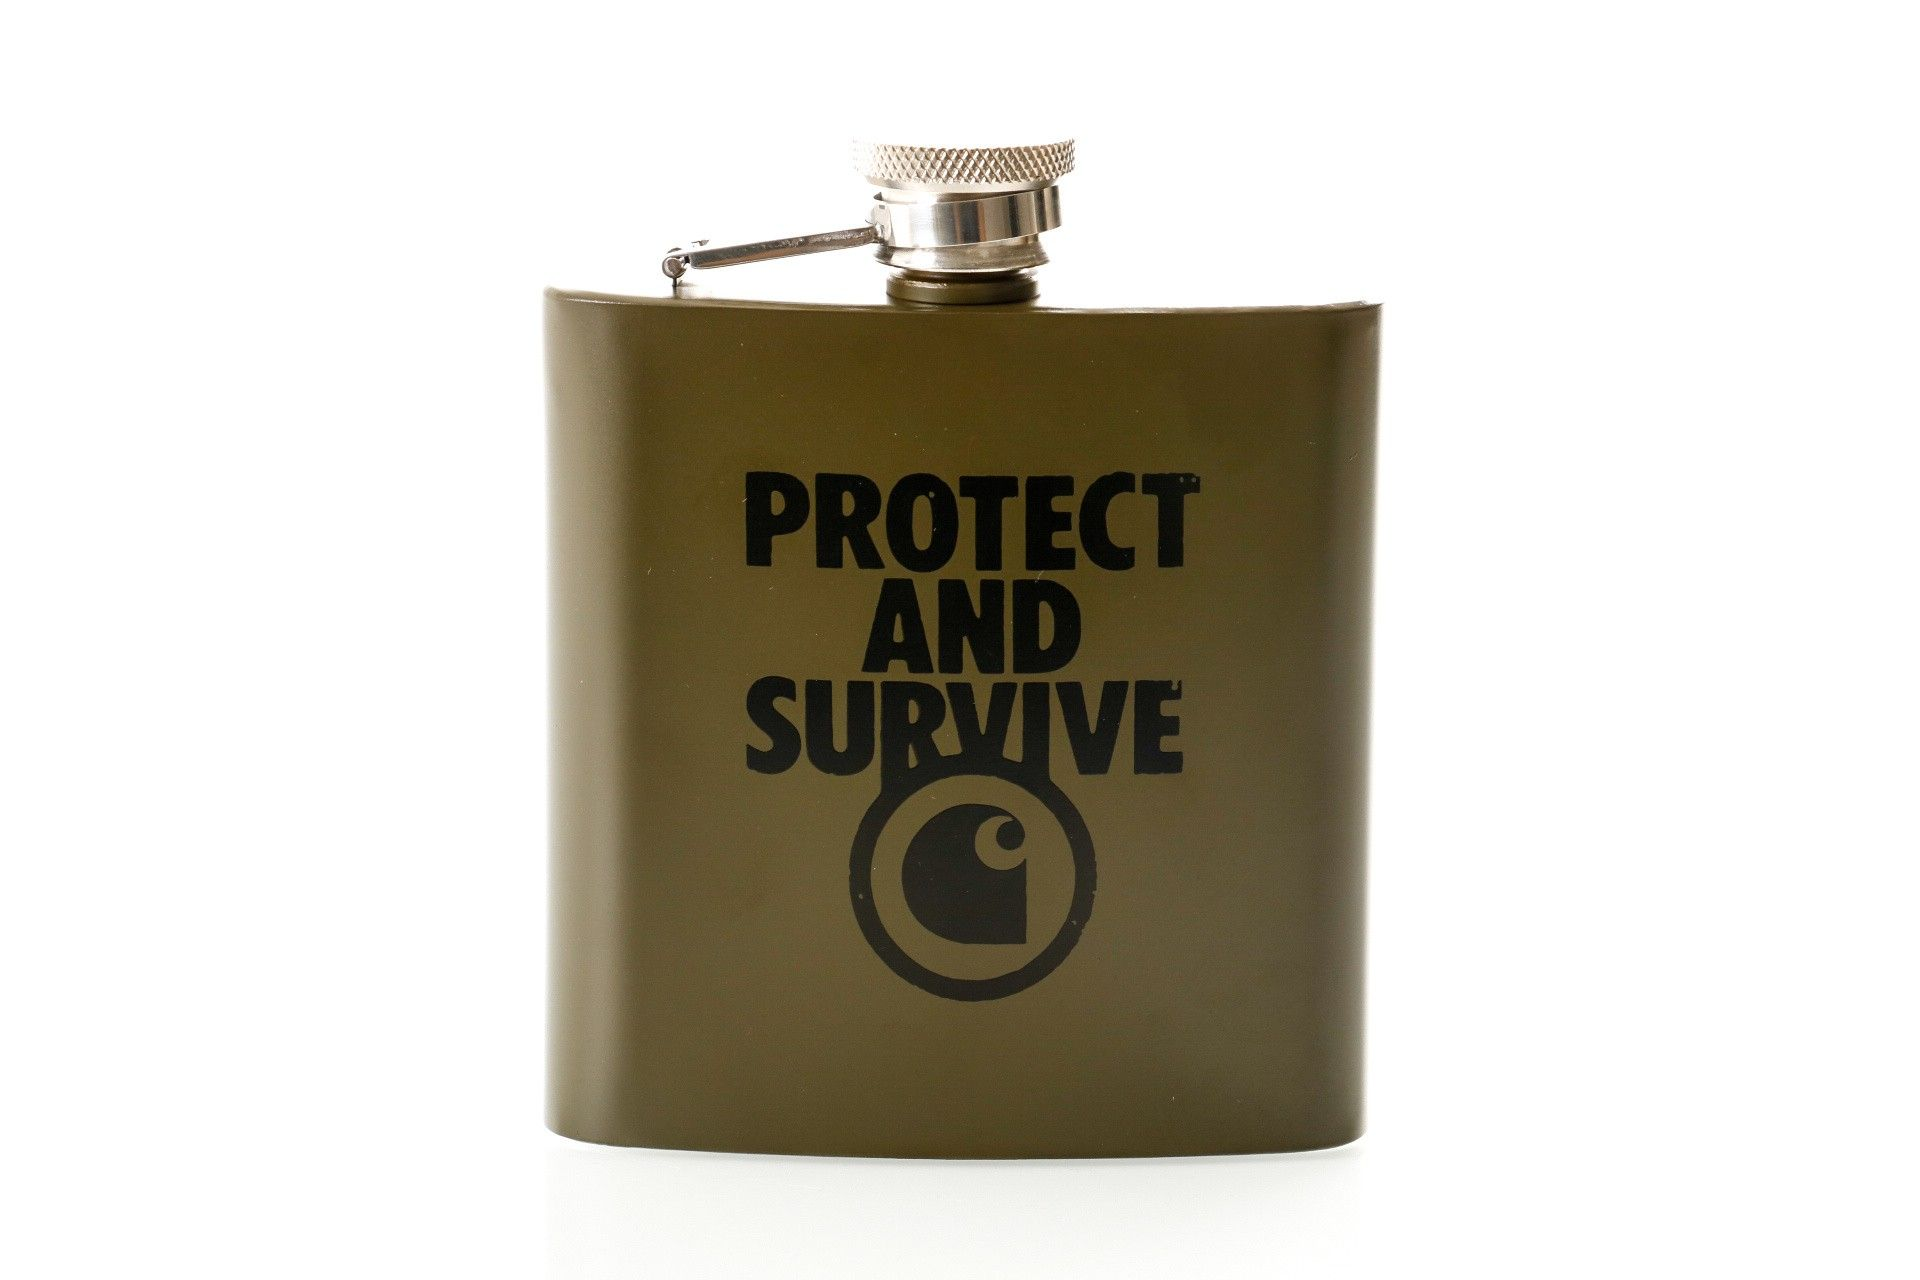 Afbeelding van Carhartt Wip Protect And Survive Whiskey Flask I027448 Heupfles Cypress